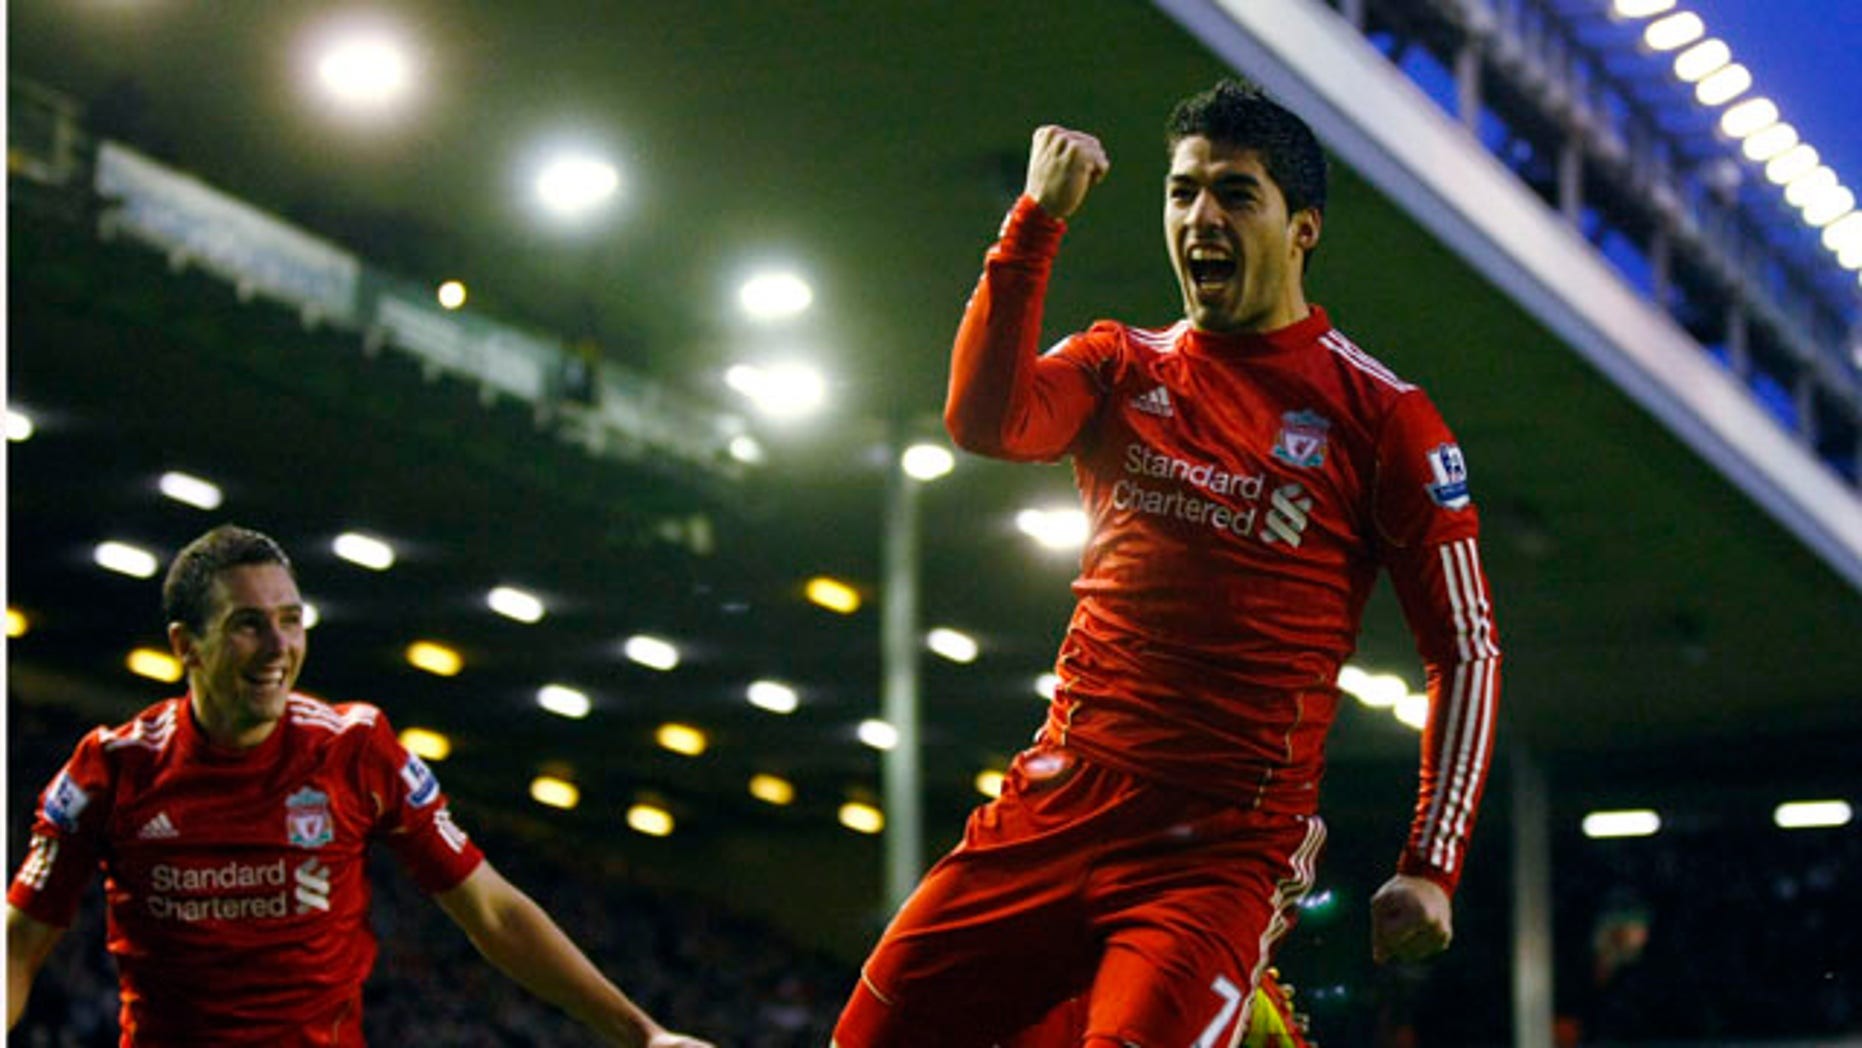 Liverpool's Luis Suarez, right, celebrates with teammate Stewart Downing after scoring a goal against Queens Park Rangers during their English Premier League soccer match at Anfield, Liverpool, England, Saturday Dec. 10, 2011. (AP Photo/Tim Hales)